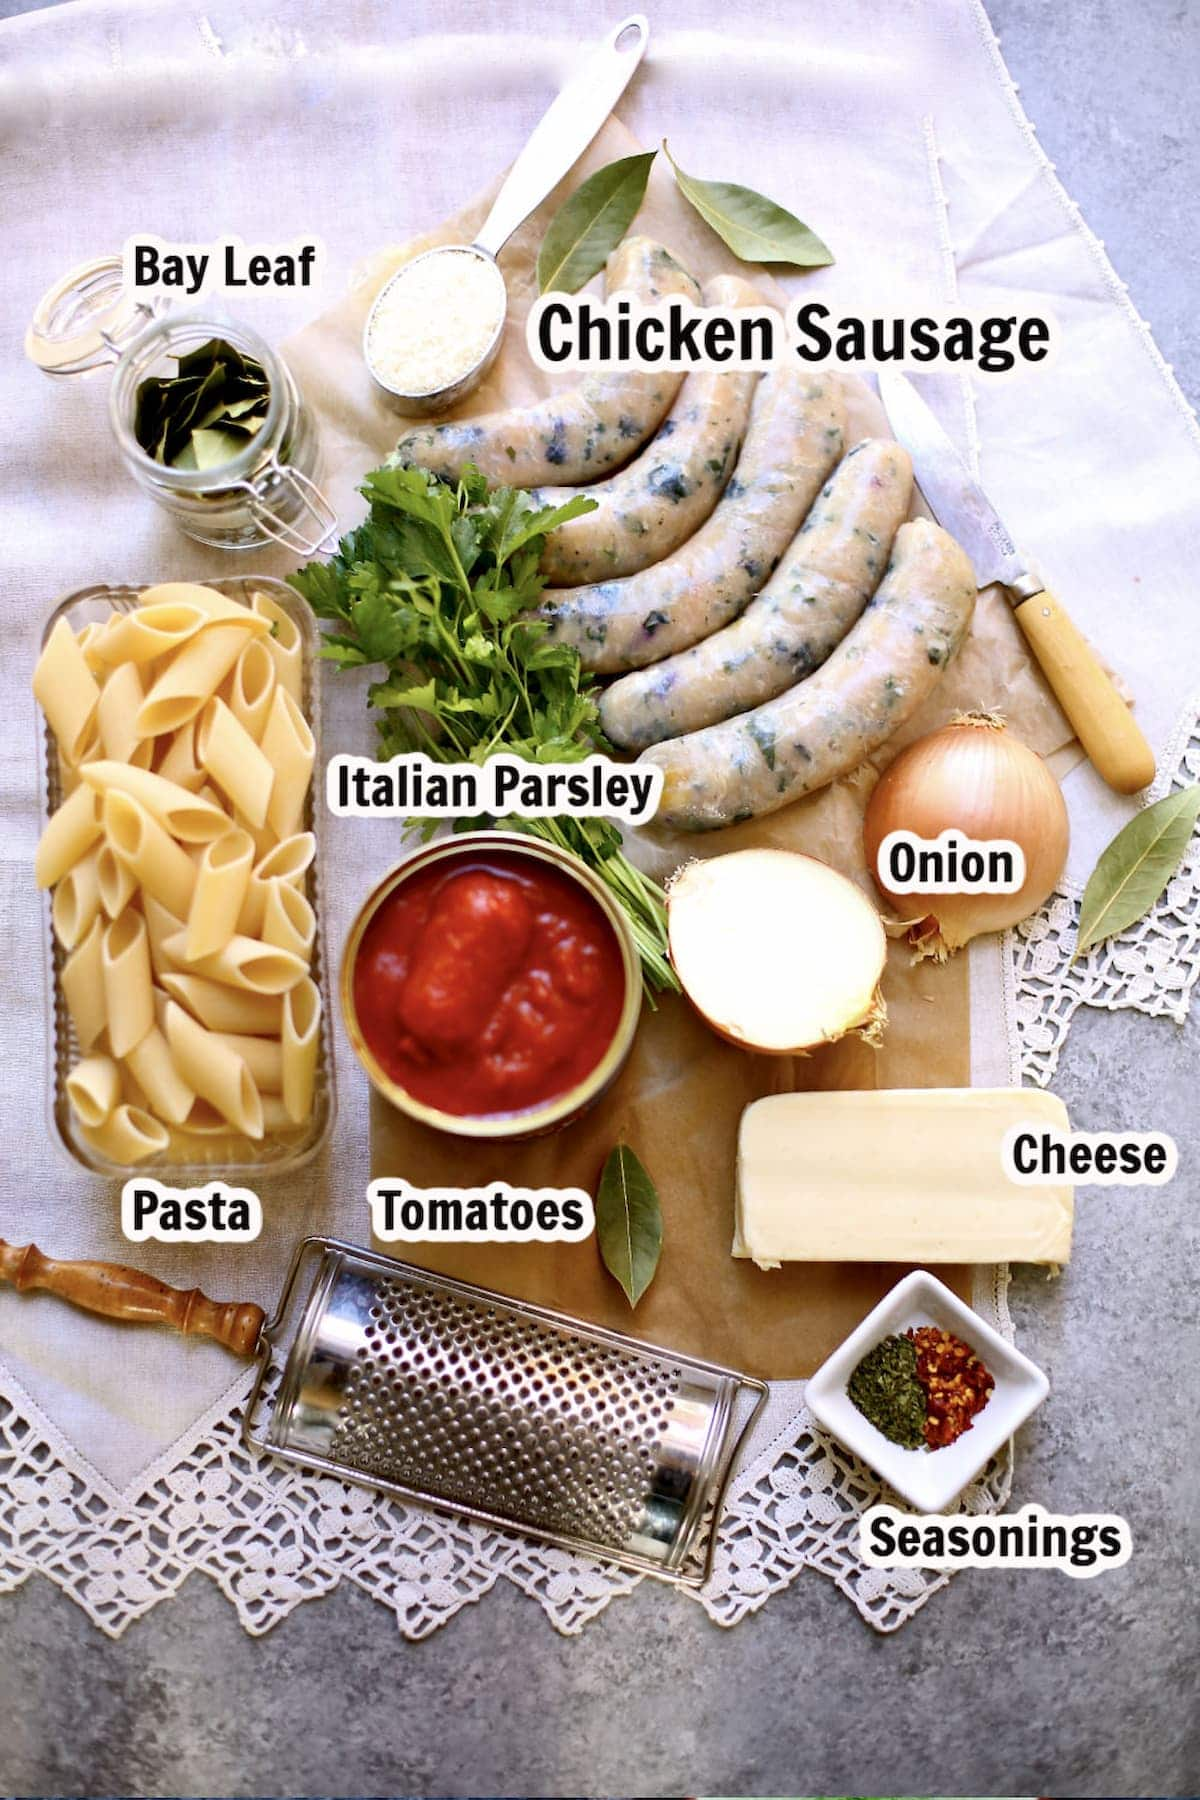 a table of ingredients for baked pasta with sausage, with text overlay saying what eash ingredient is. cheese, tomatos, sausage, pasta, seasonings.